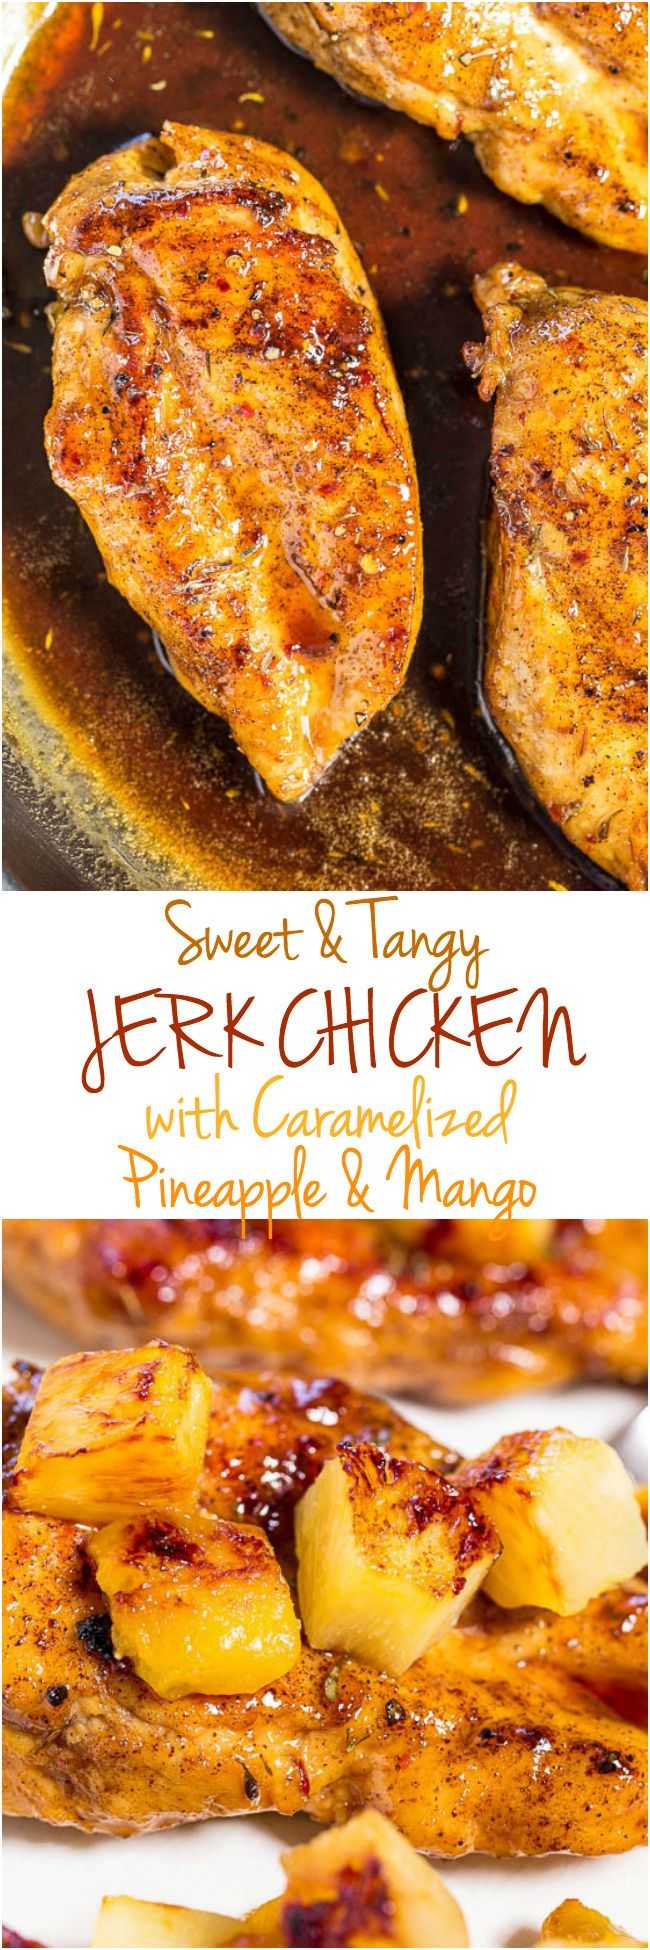 17 Best images about Recipes on Pinterest   Caribbean ...